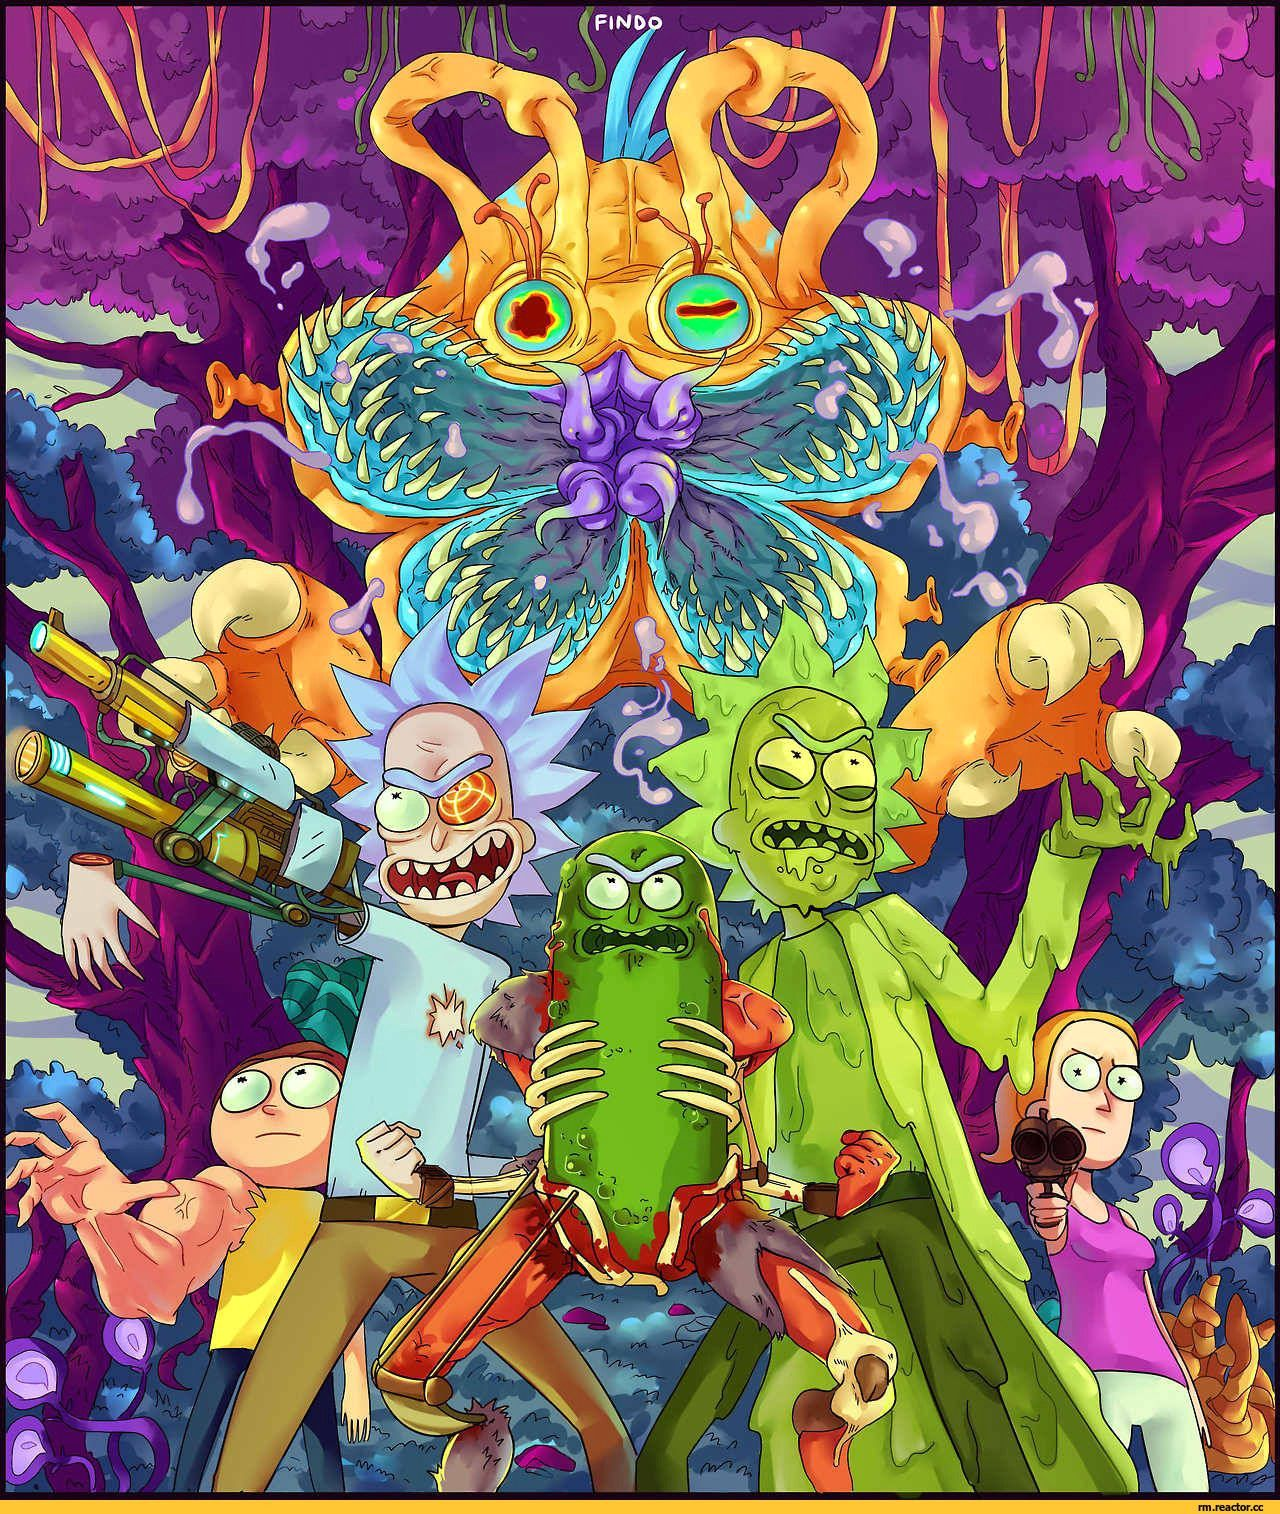 Rick And Morty Wallpaper Beautiful Marijuanaking King Slime Green In 2020 Rick And Morty Poster Cartoon Wallpaper Rick And Morty Drawing